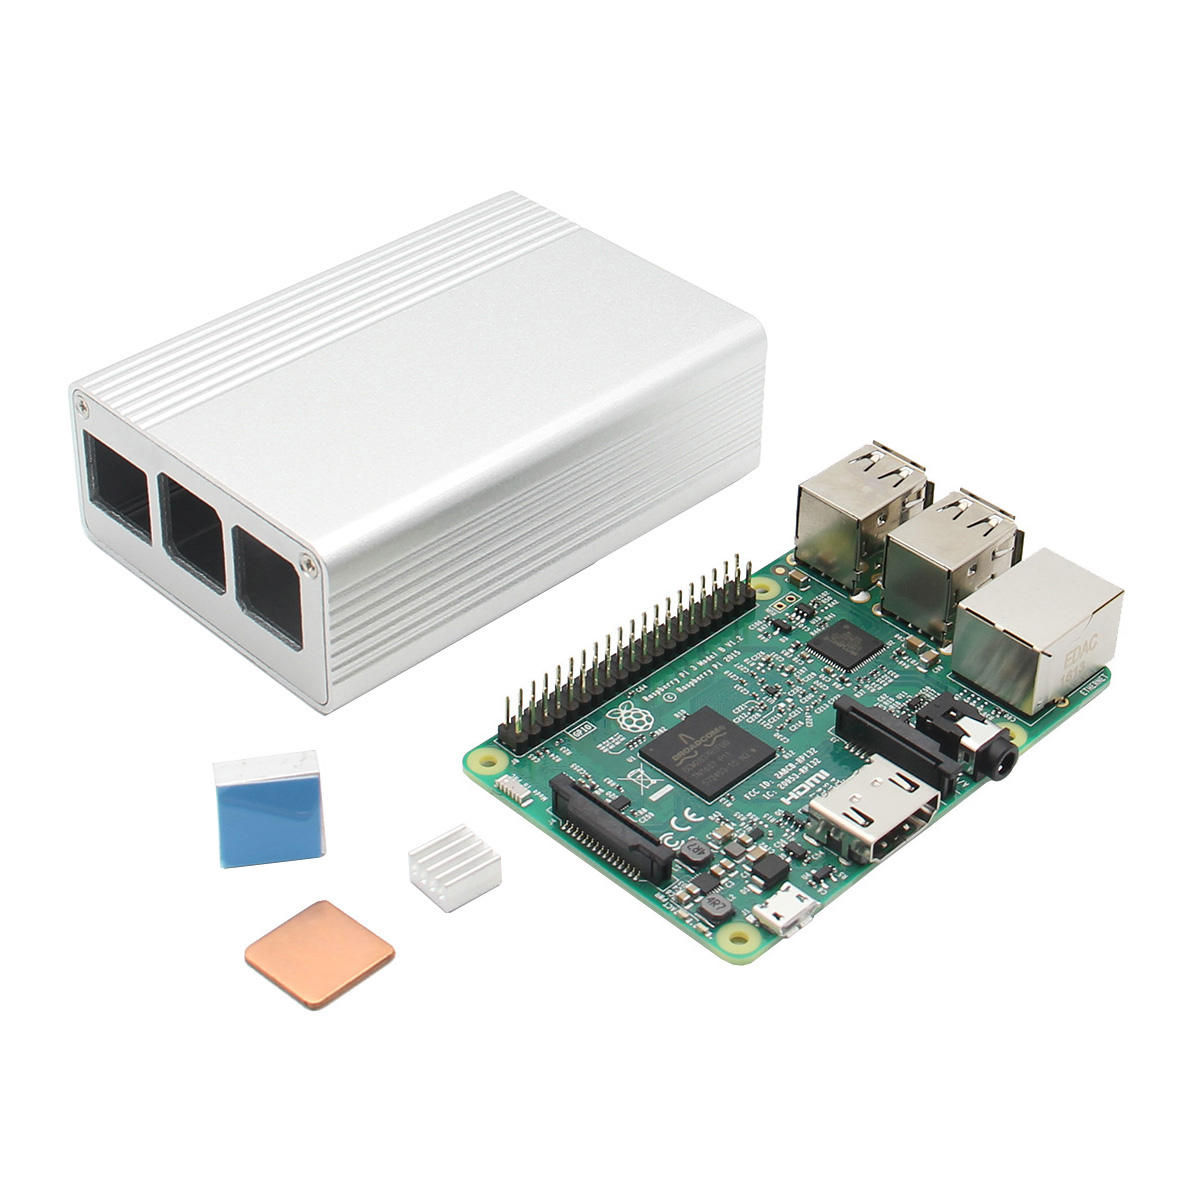 3 In 1 Raspberry Pi 3 Model B Board + White Aluminum Alloy Case + Aluminum Copper Heat Sink Kit